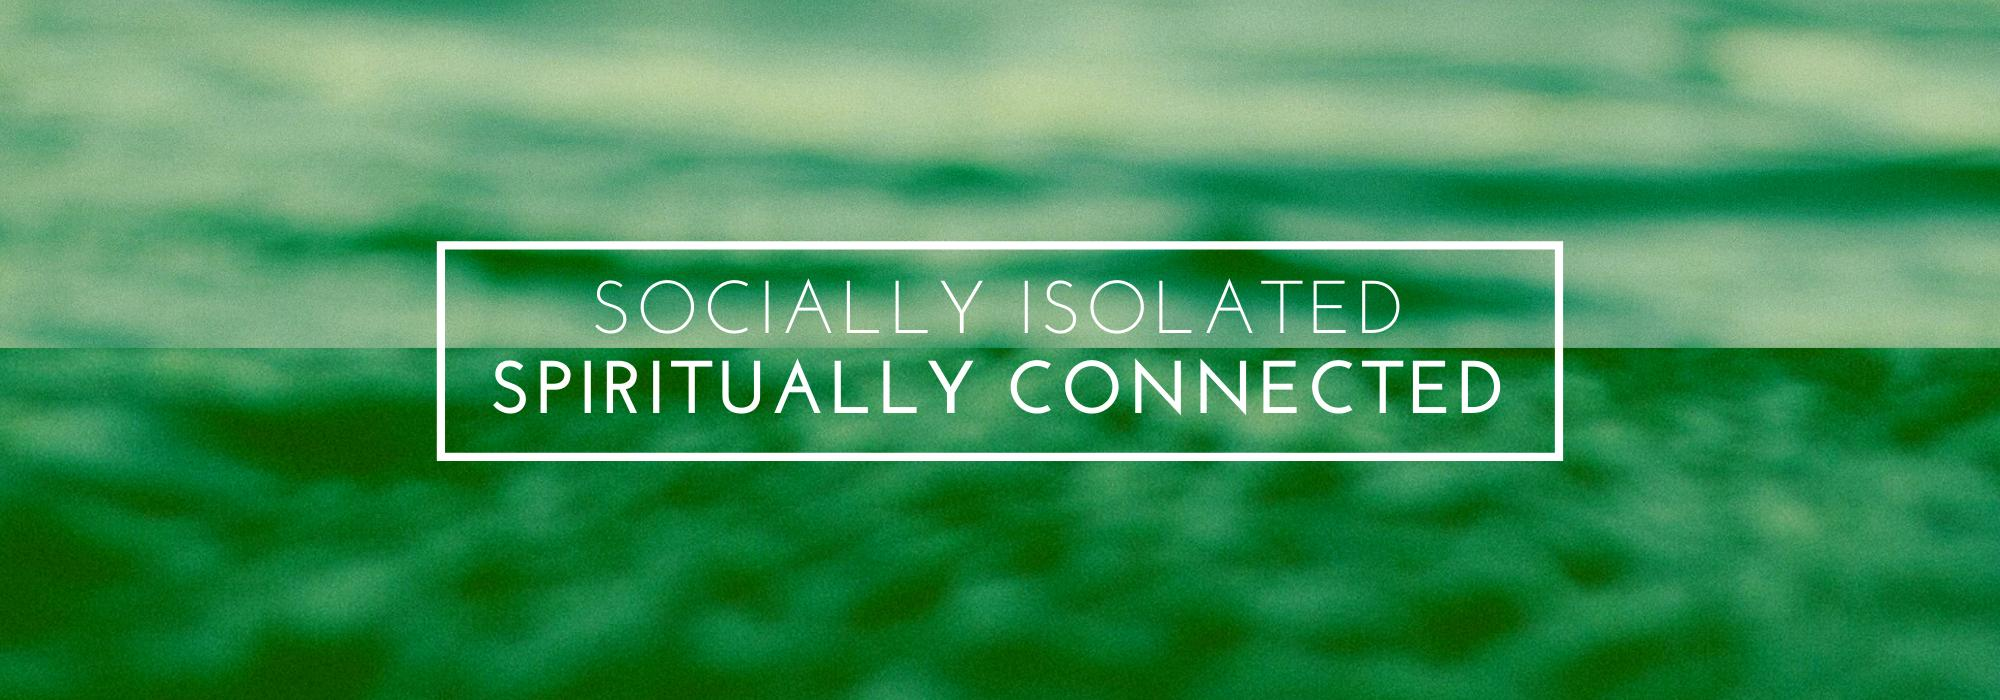 Socially Isolated | Spiritually Connected